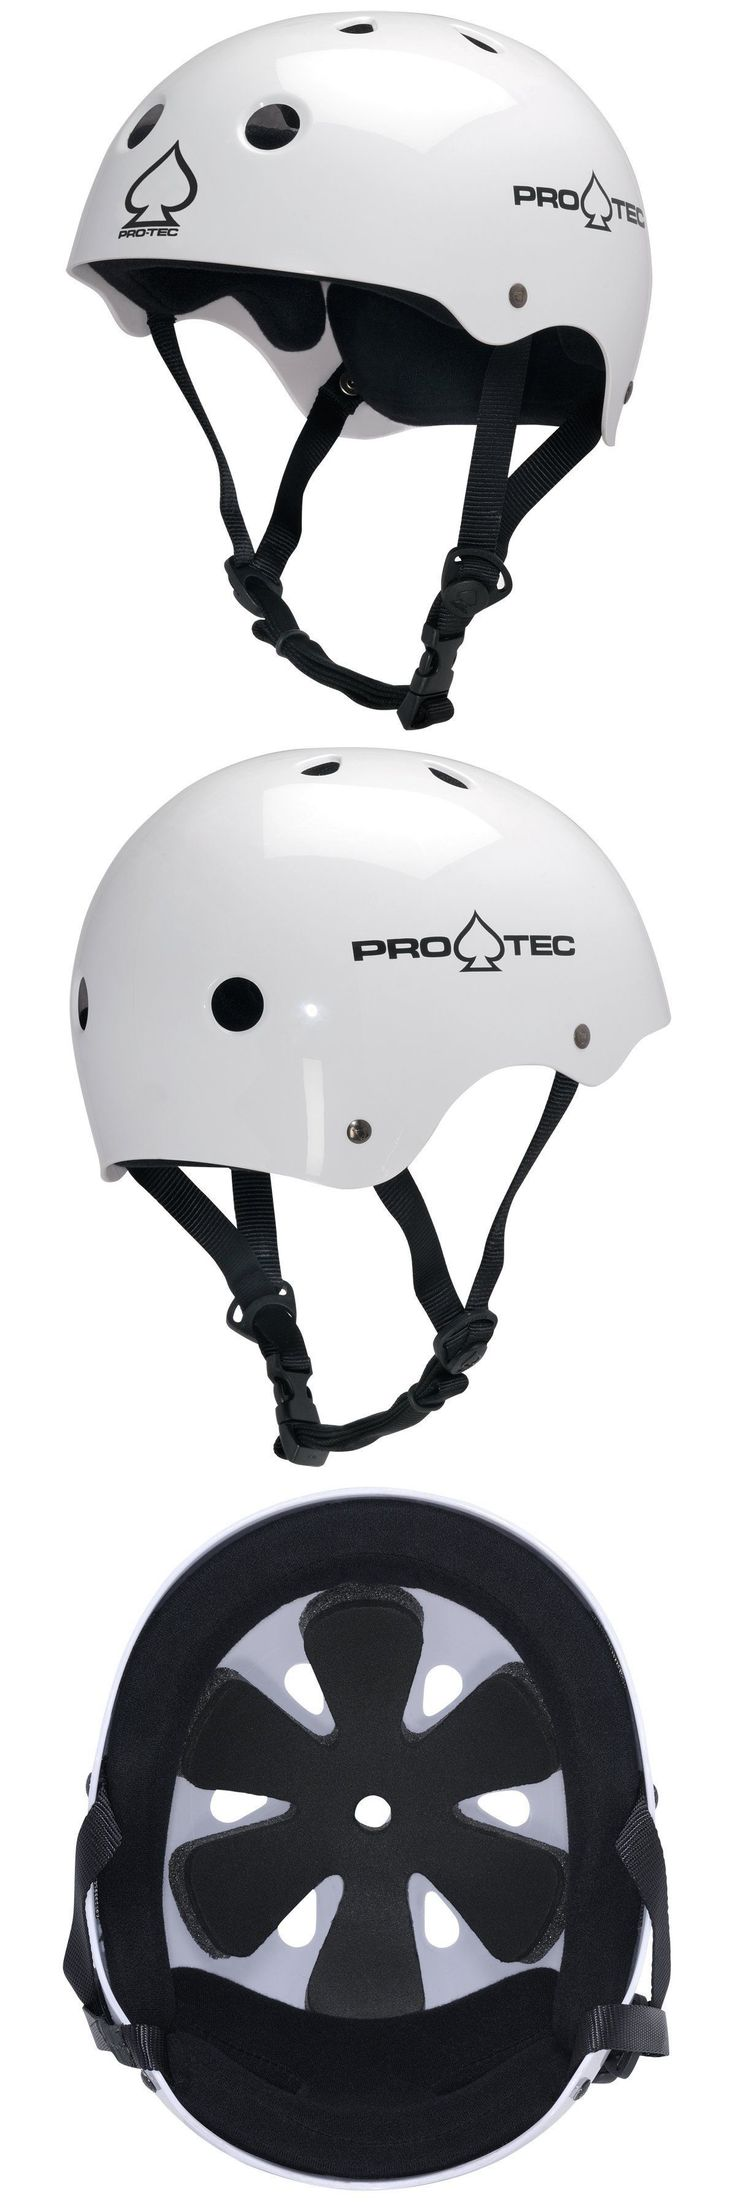 Protective Gear 36317: Pro-Tec The Classic Helmet For Bike Skate: Gloss White: Xl (59-60Cm) -> BUY IT NOW ONLY: $37.05 on eBay!